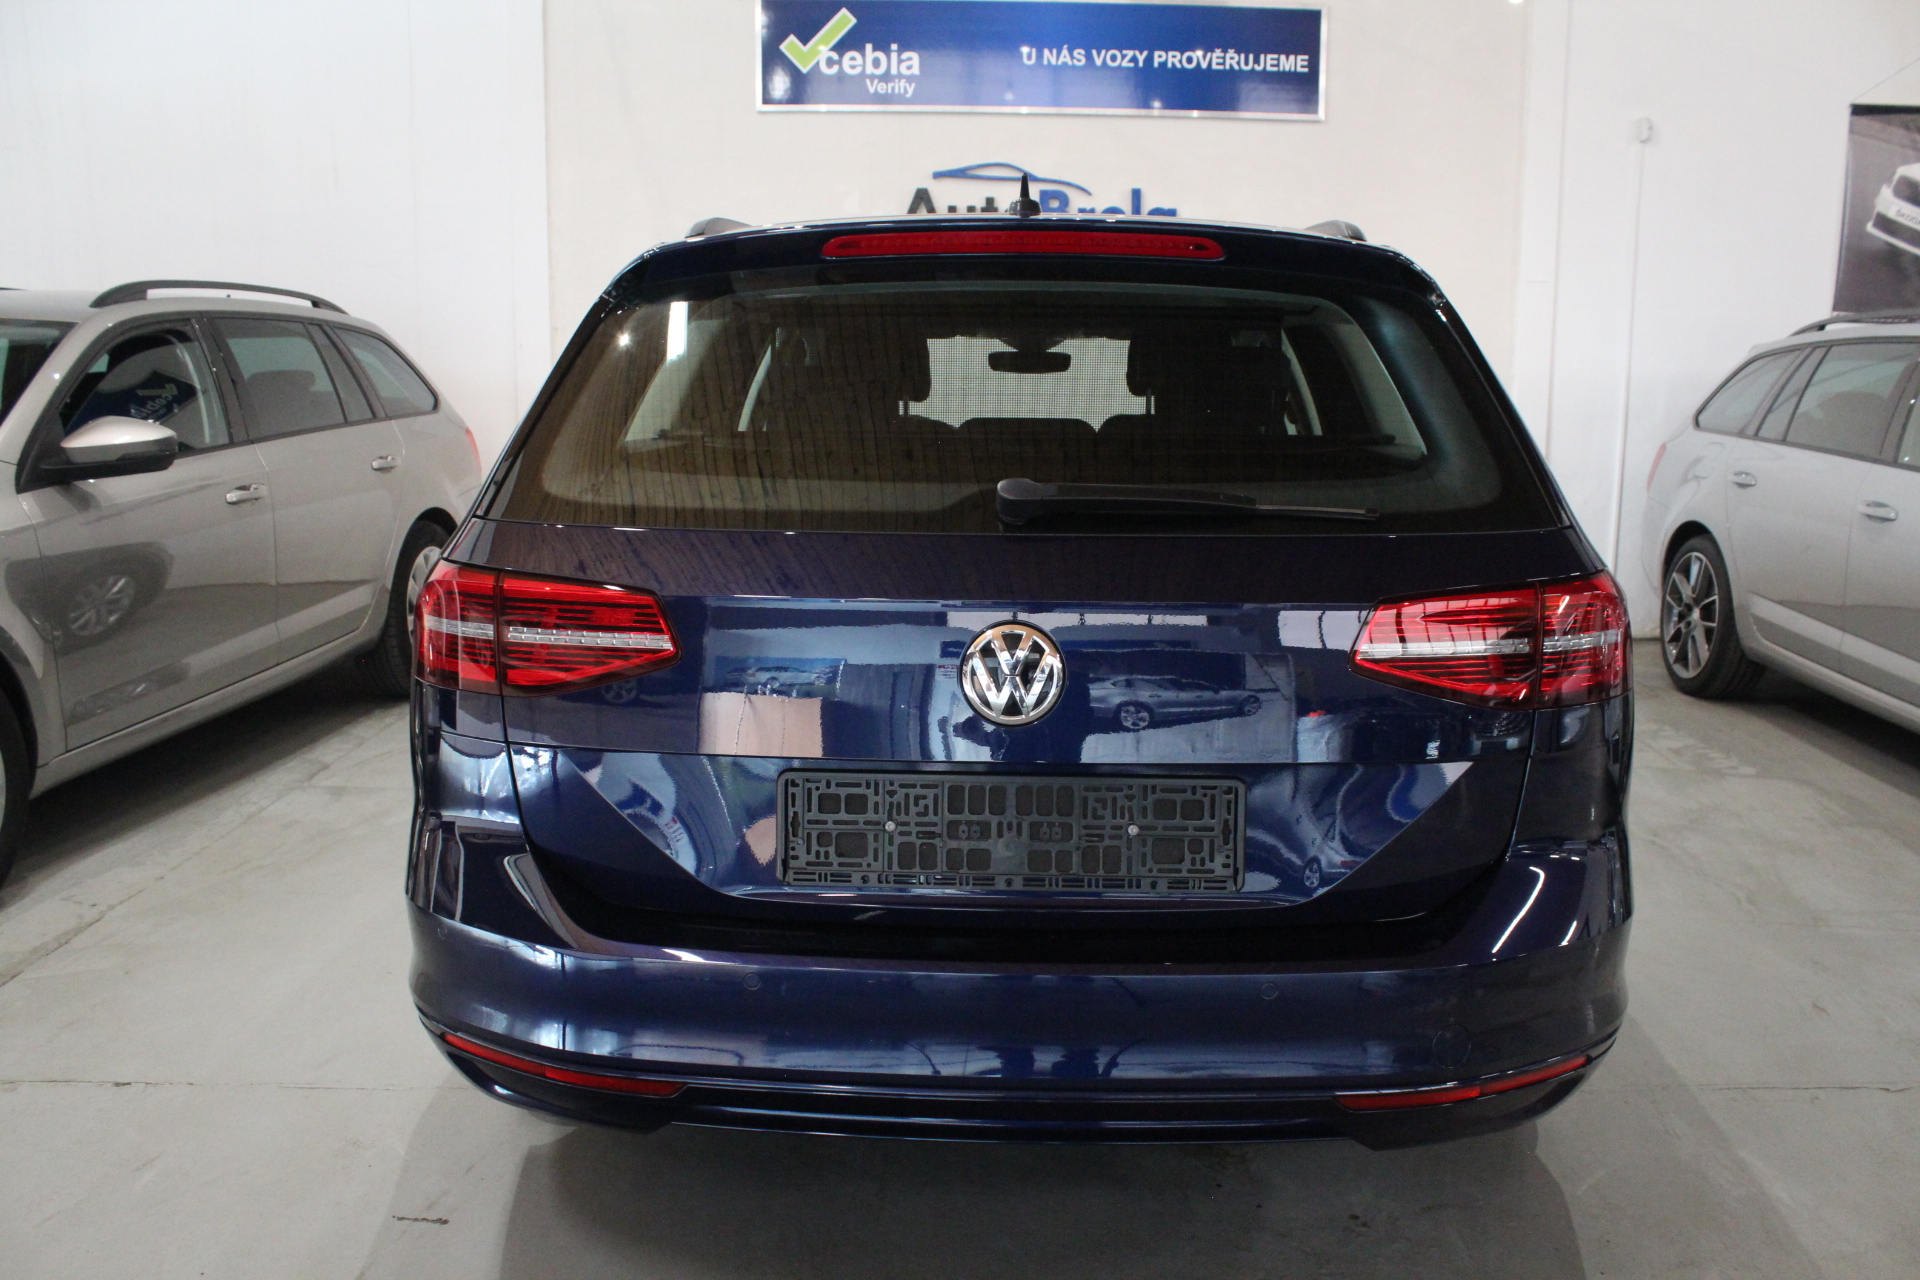 VW Passat B8 2.0 TDI DSG Highline FULL LED Active Info display 12″ Model 2018 - AutoBrela obrázek